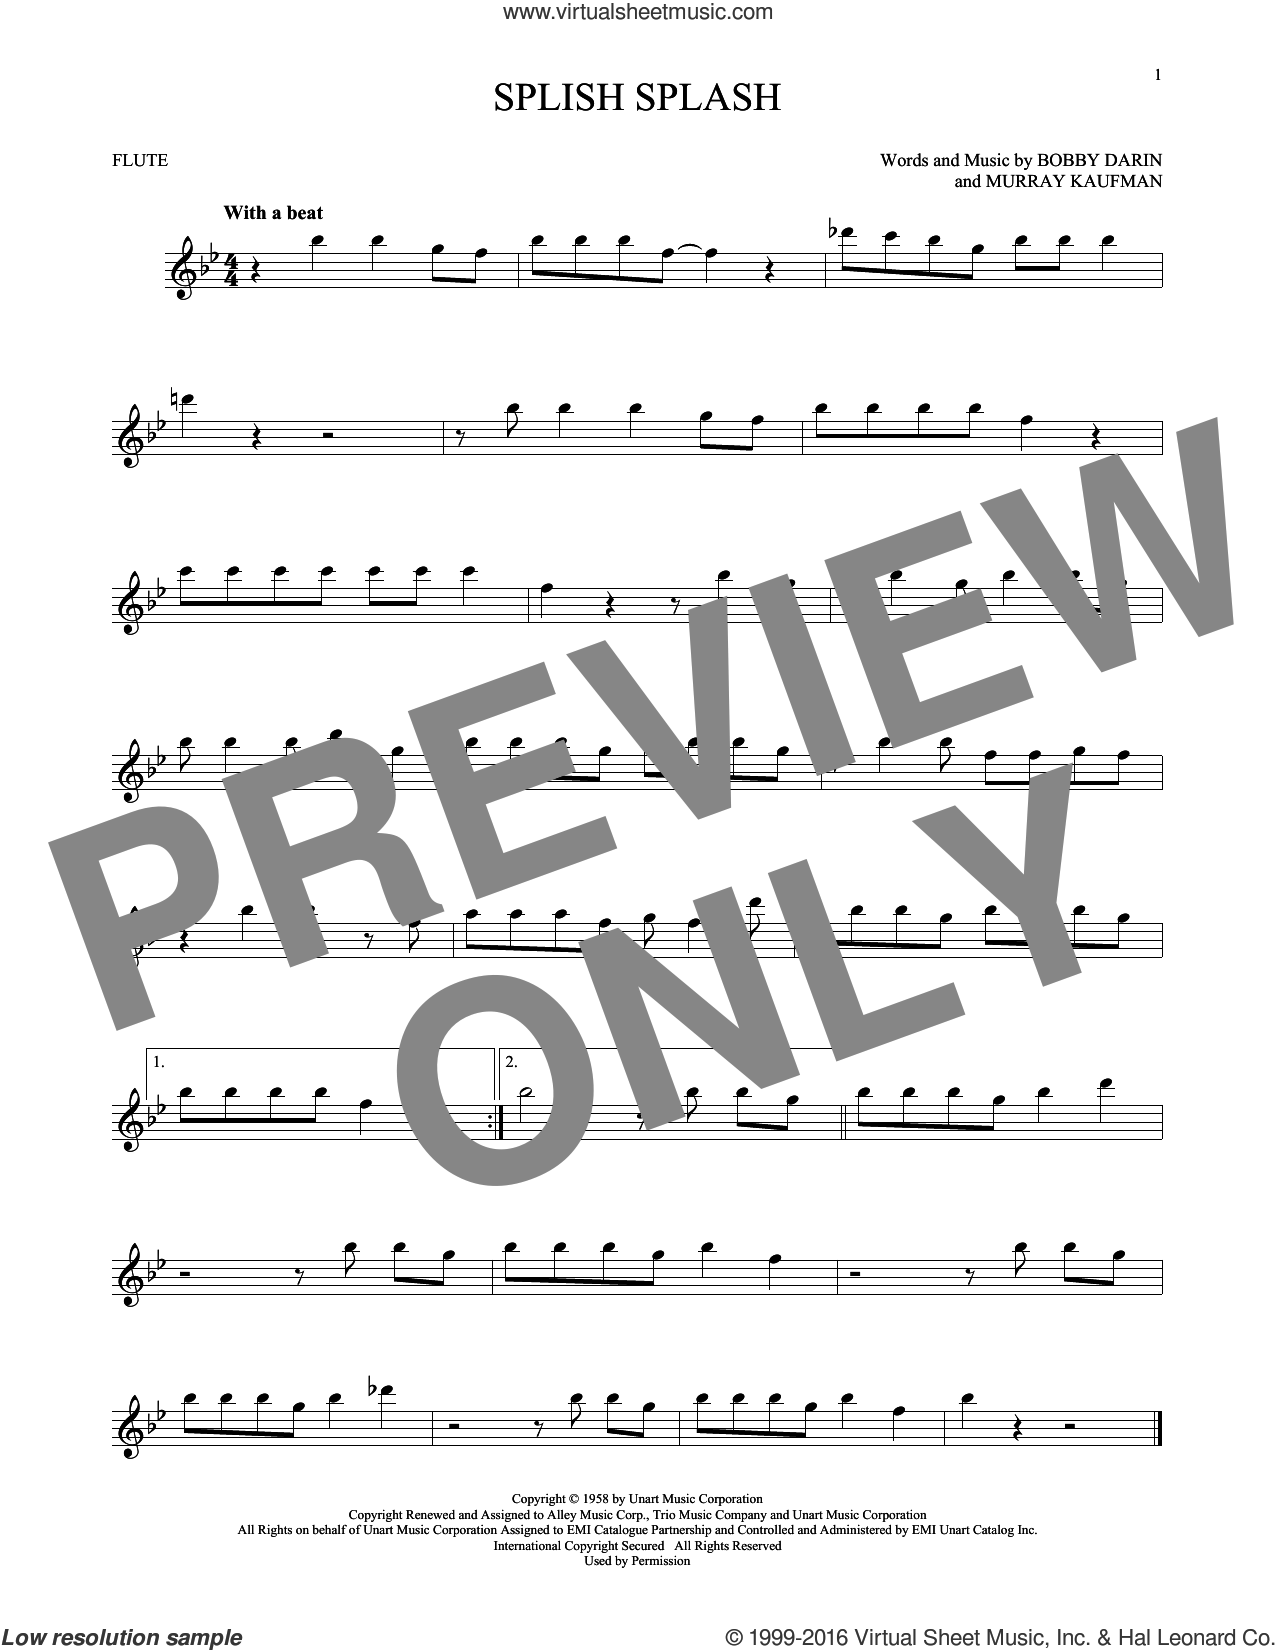 Splish Splash sheet music for flute solo by Murray Kaufman and Bobby Darin. Score Image Preview.